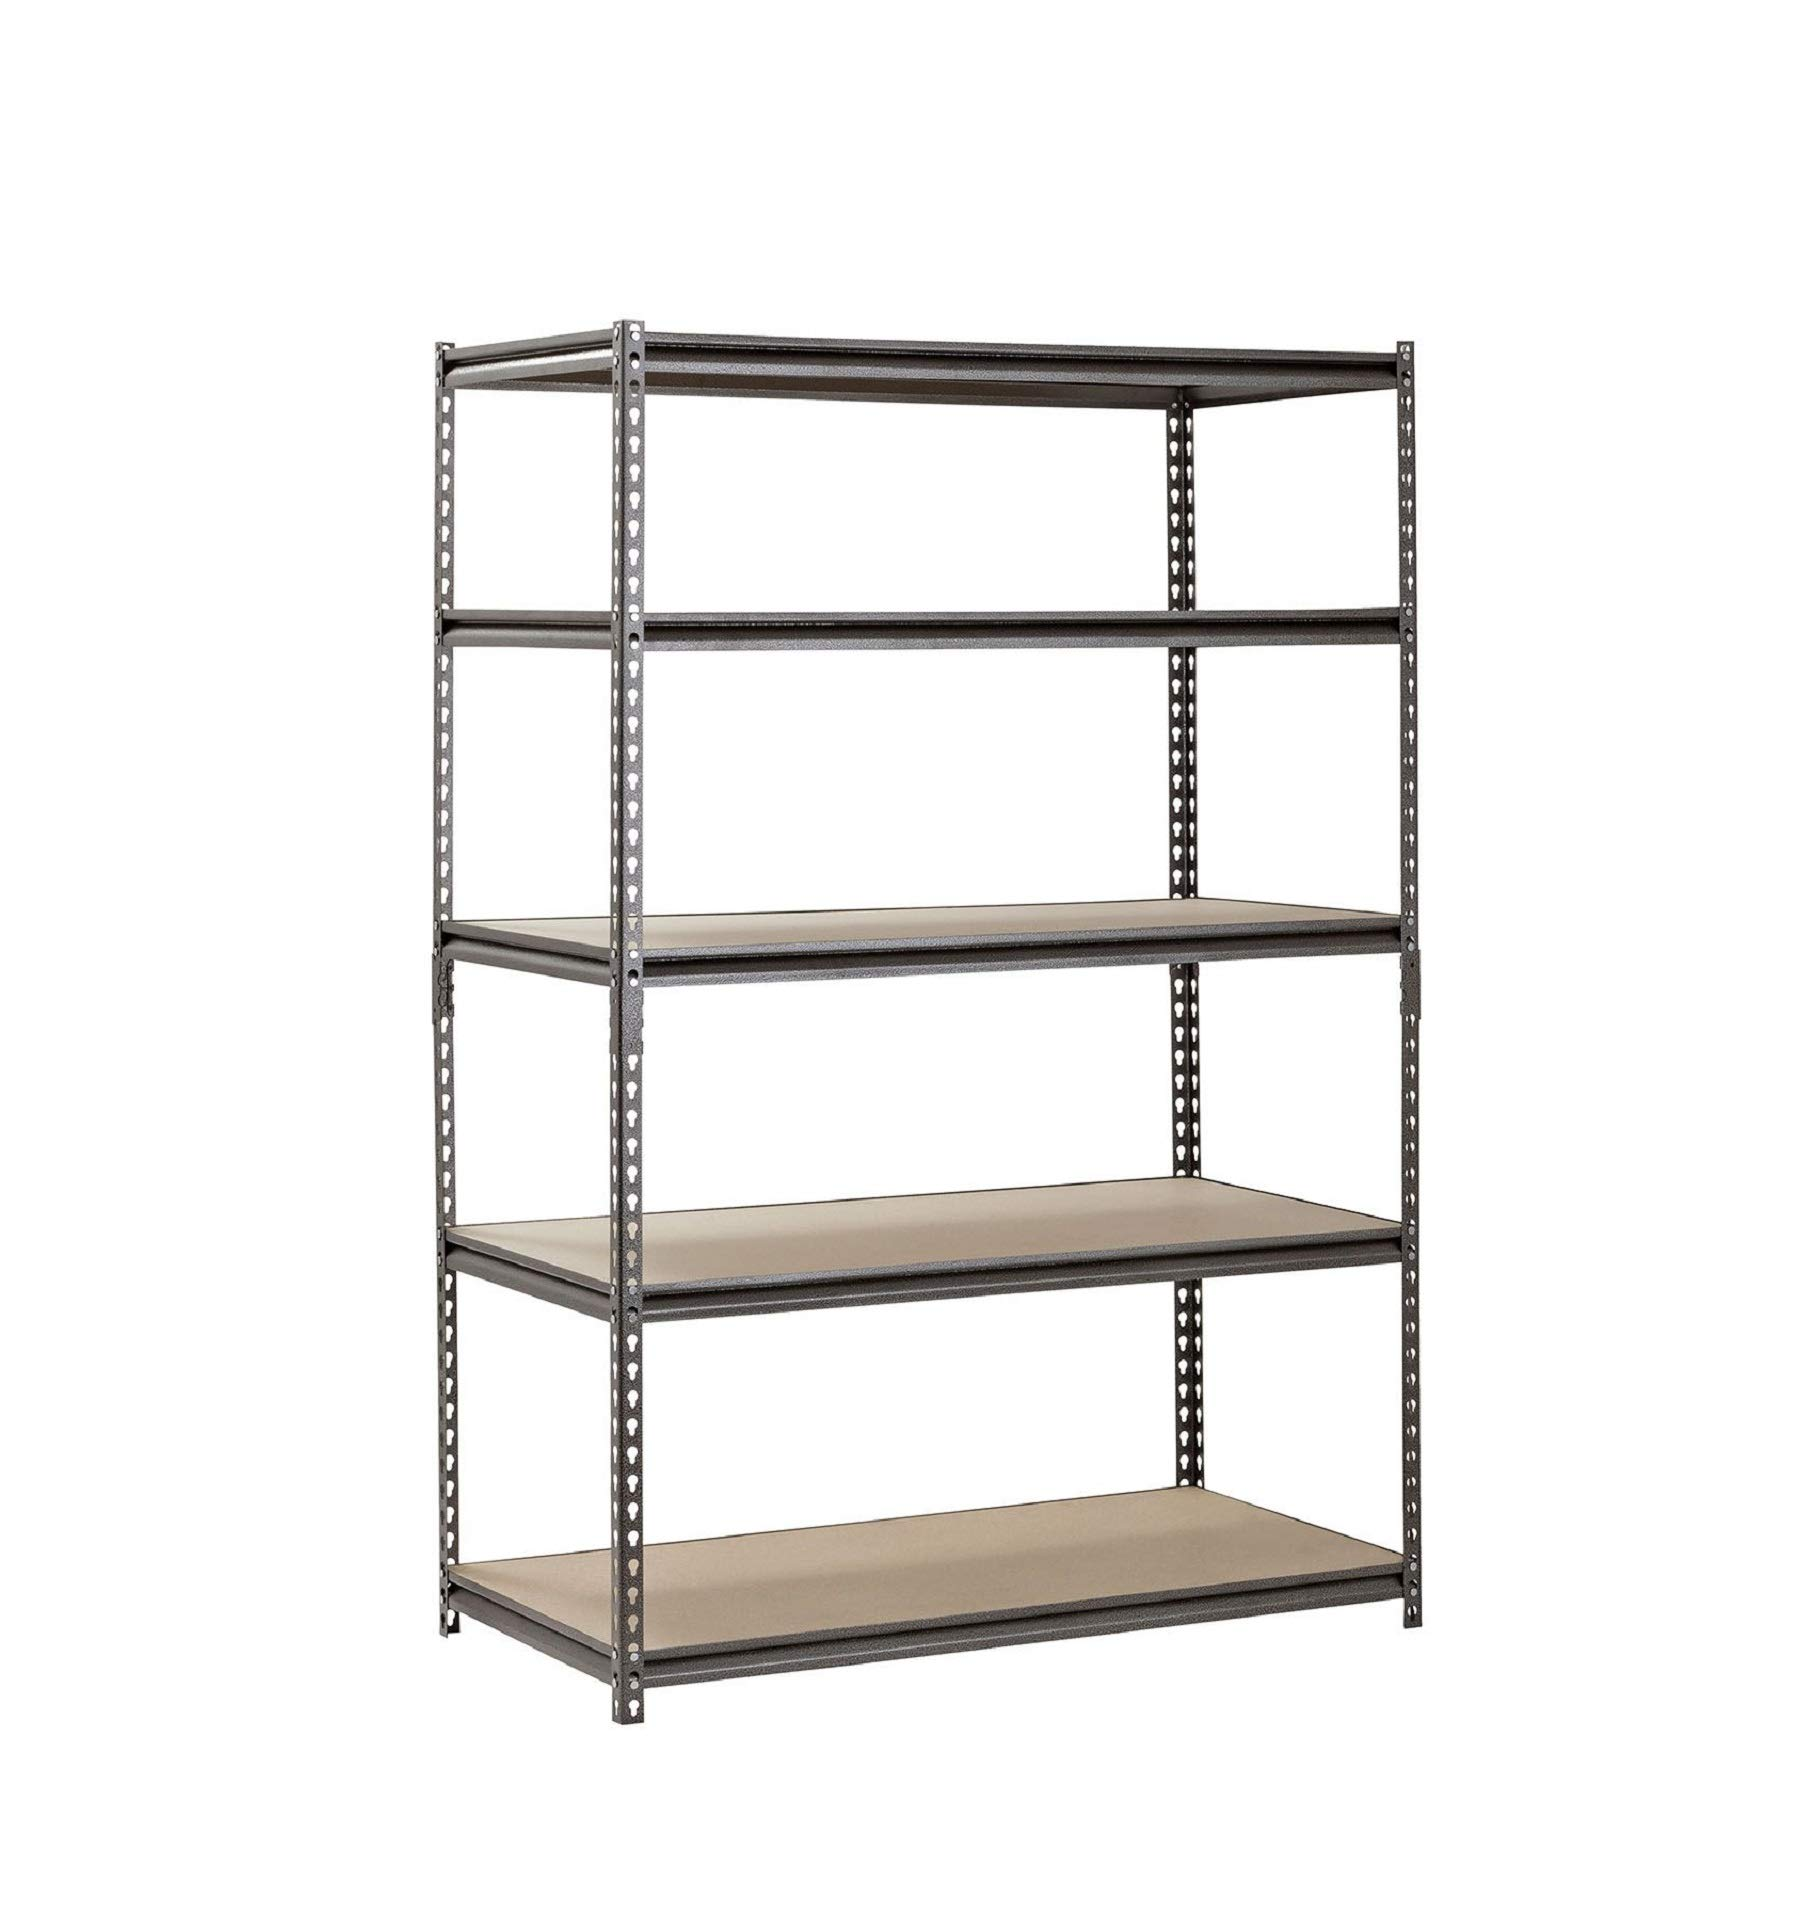 Muscle Rack 5-Shelf Steel Shelving, Silver-Vein (18'' D x 48'' W x 72'' H) (1)